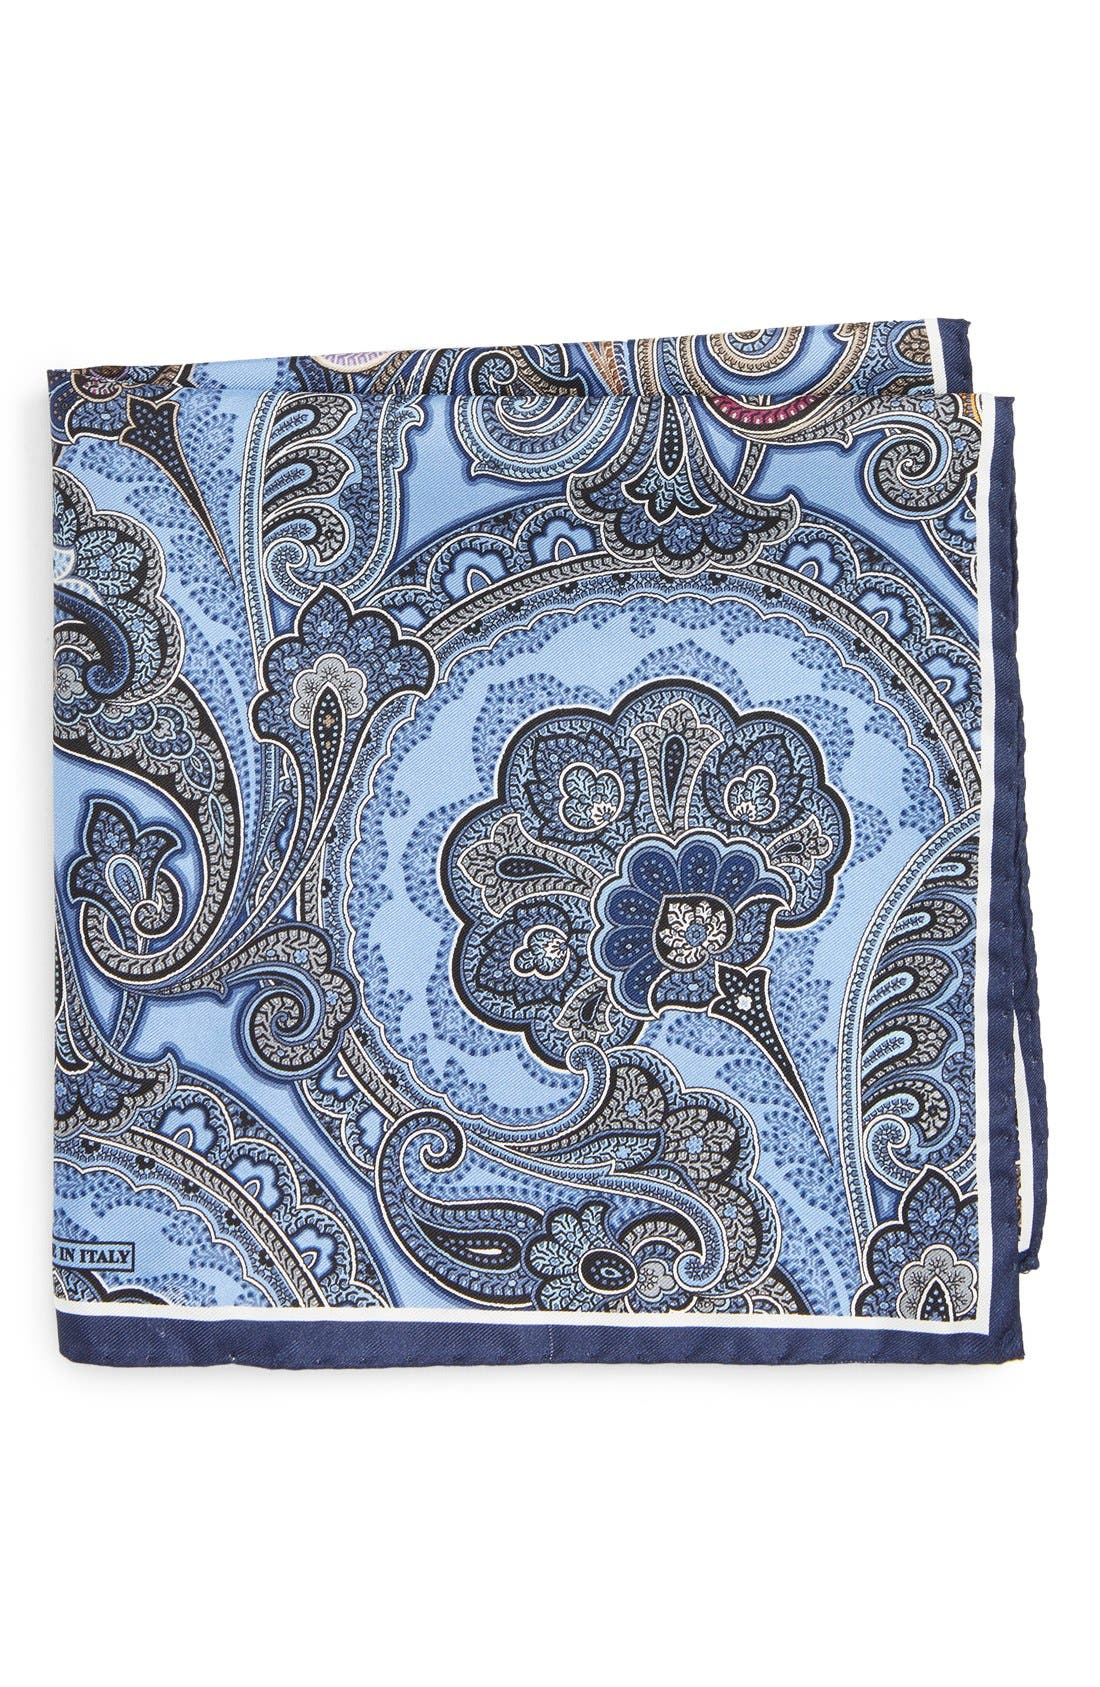 Nordstrom men/'s shop Navy Paisley pocket square $30